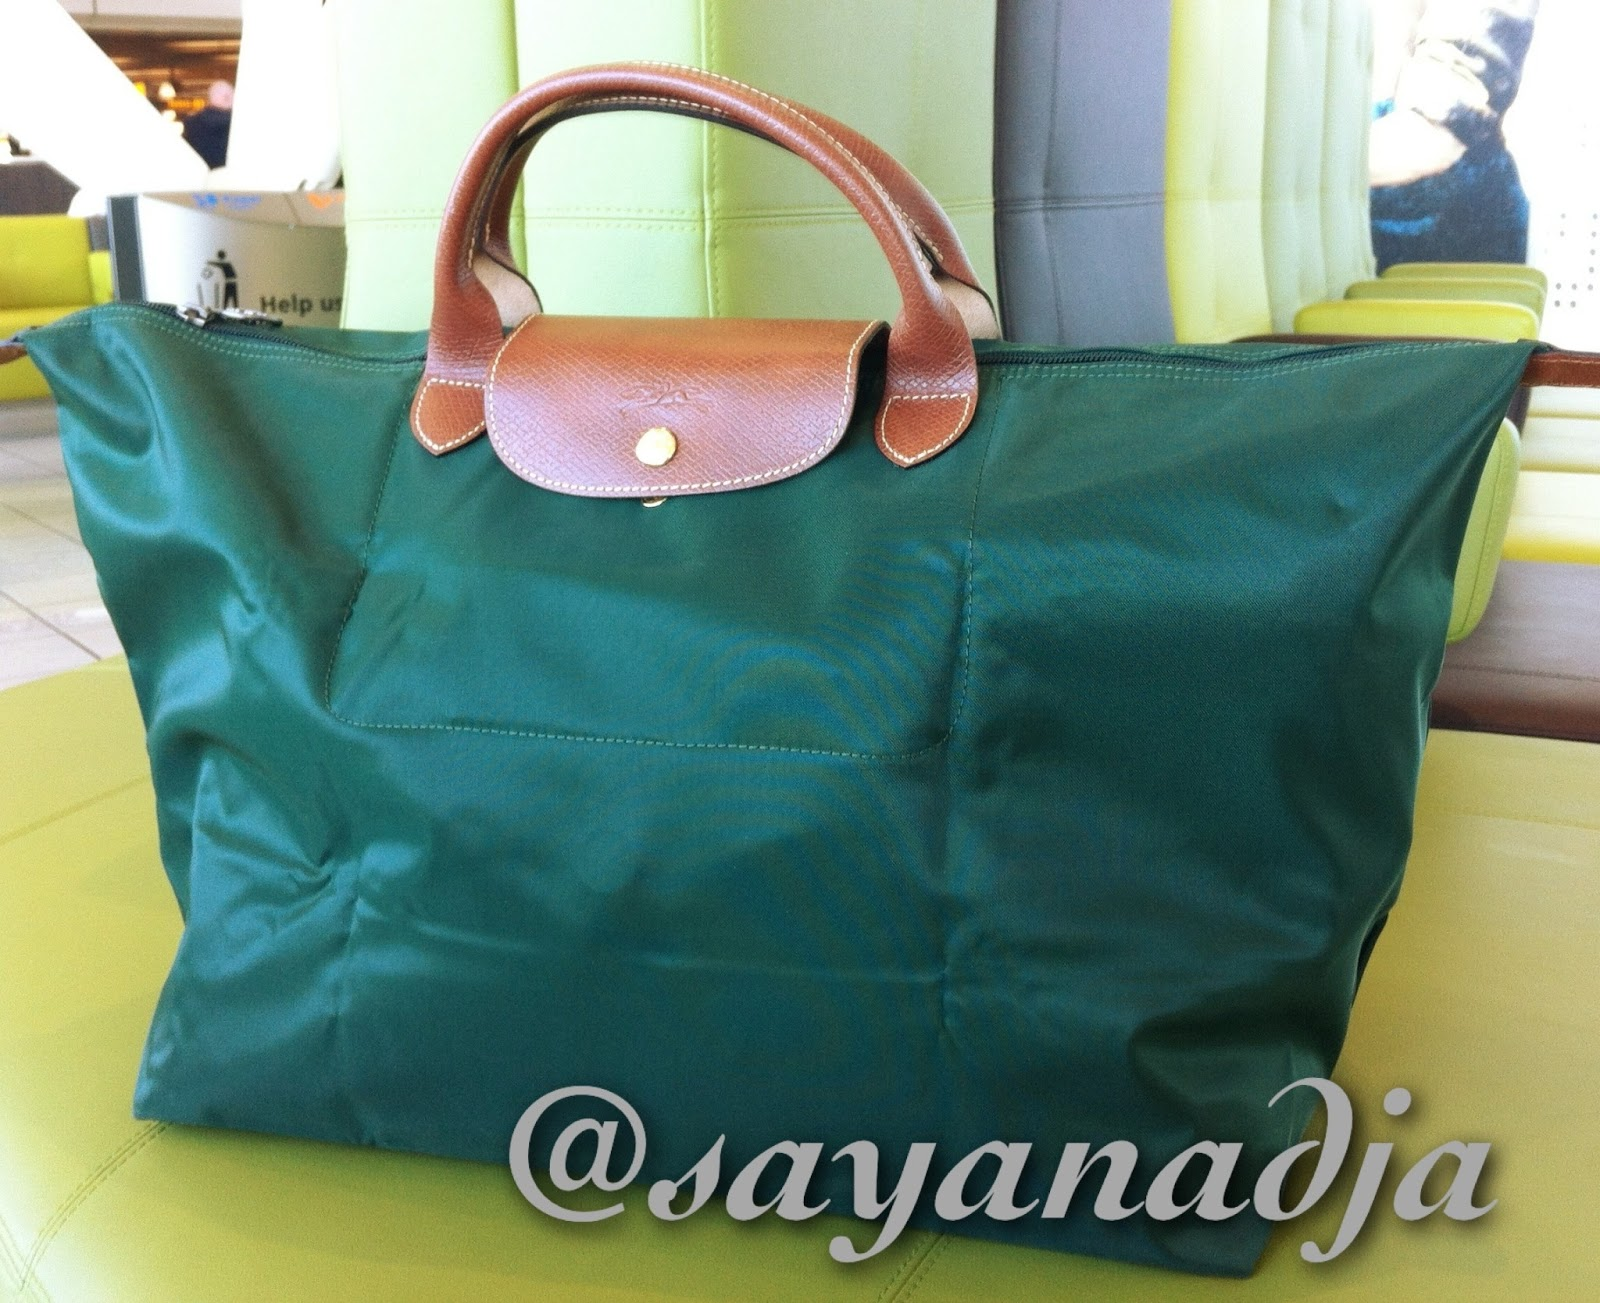 Travel with style  Longchamp Le Pliage Travel Bag in Fir 7c53087a9e1f2